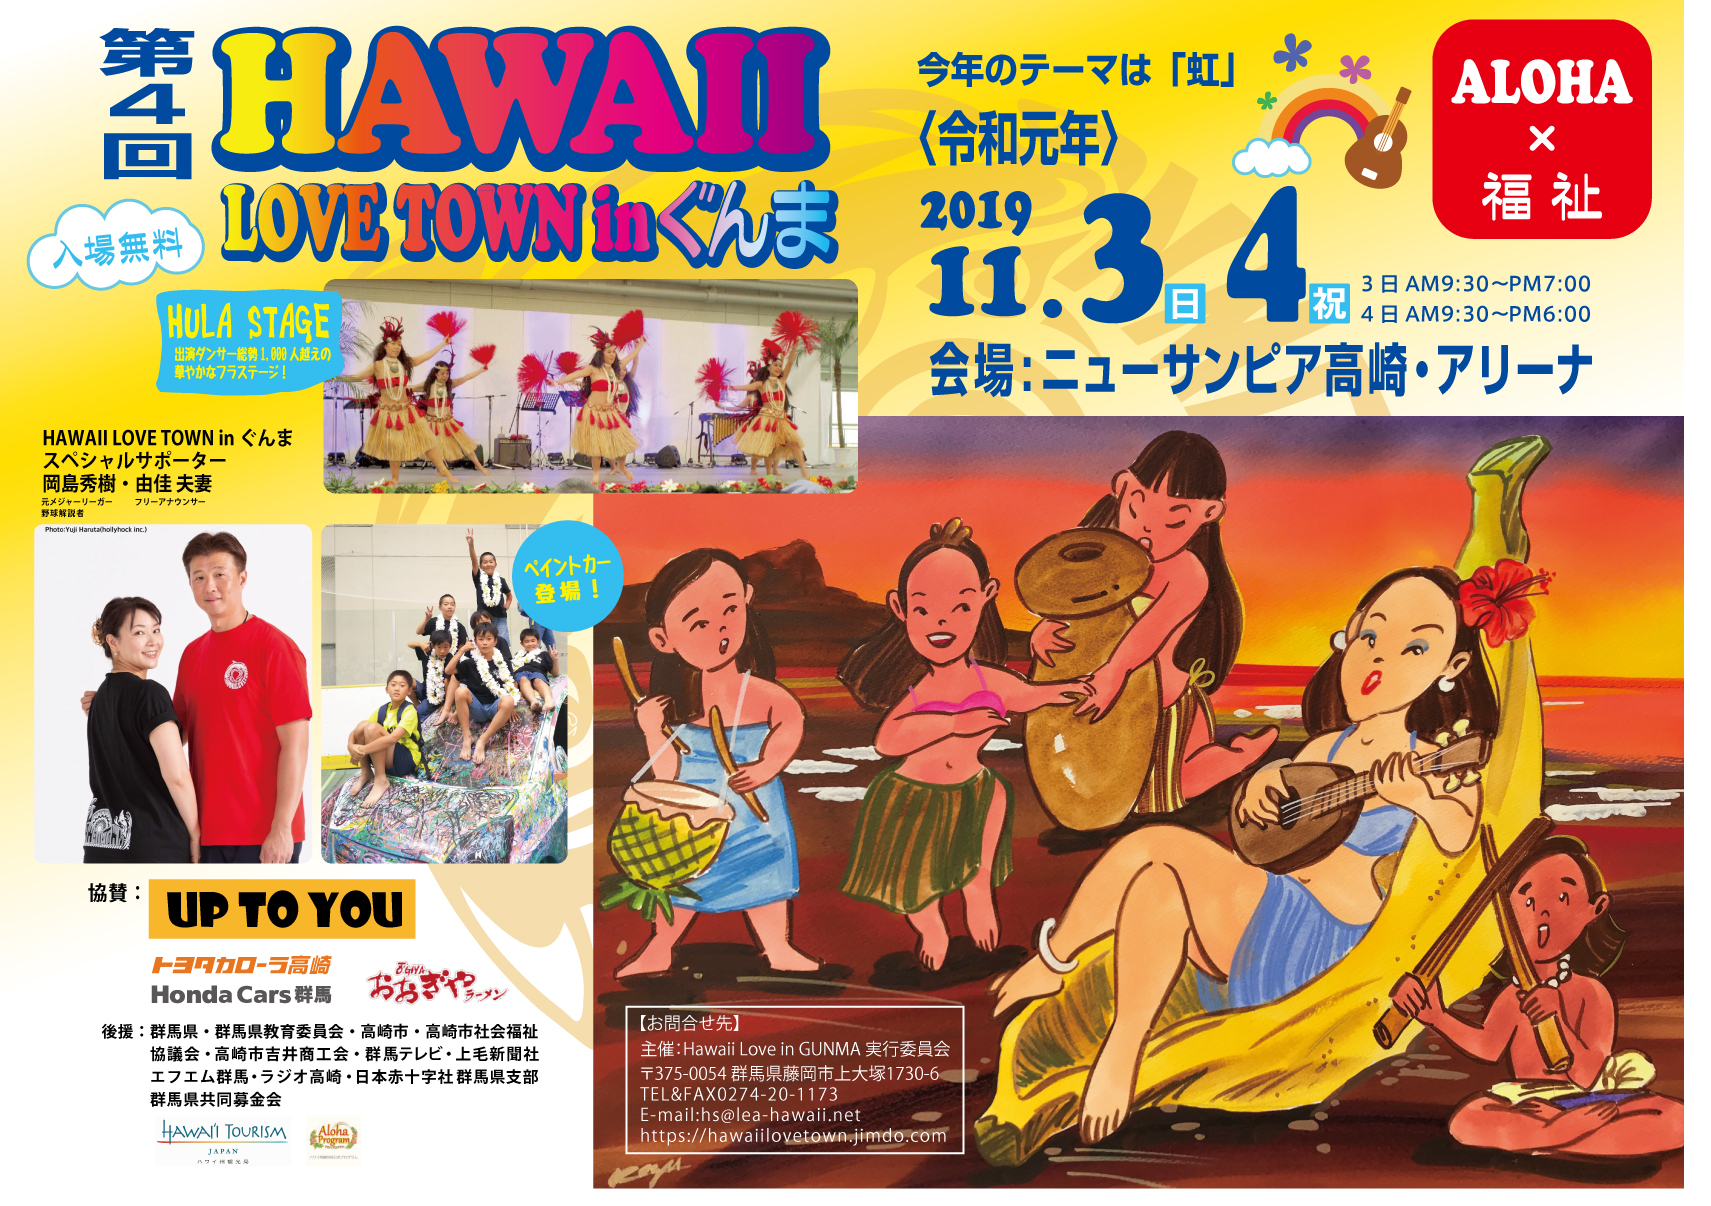 Hawaii LoveTown in ぐんま 2019